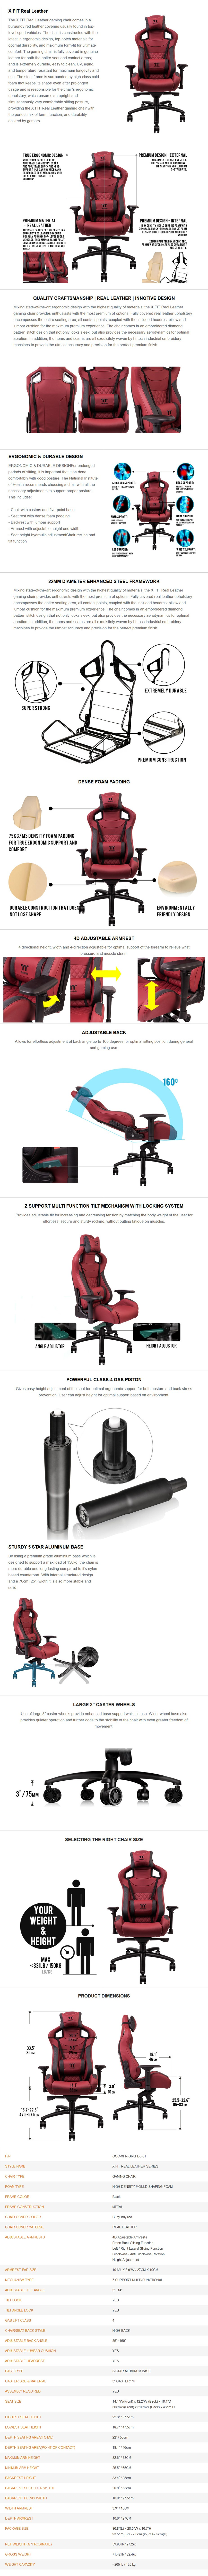 Thermaltake X FIT TT Premium Real Leather Gaming Chair - Burgundy Red - Overview 1